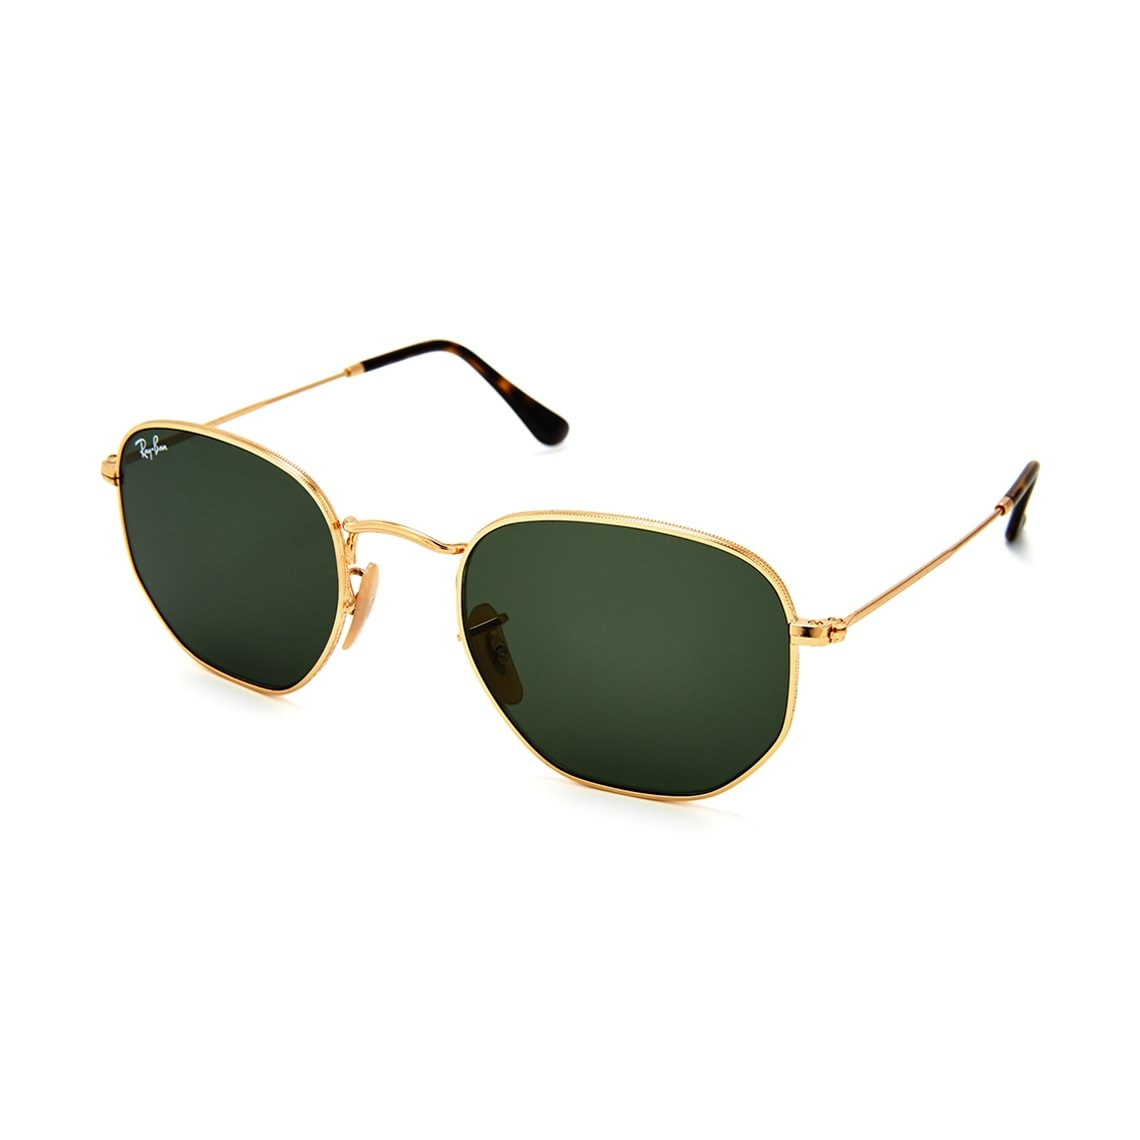 Ray-Ban Hexagonal RB3548N 001 5121